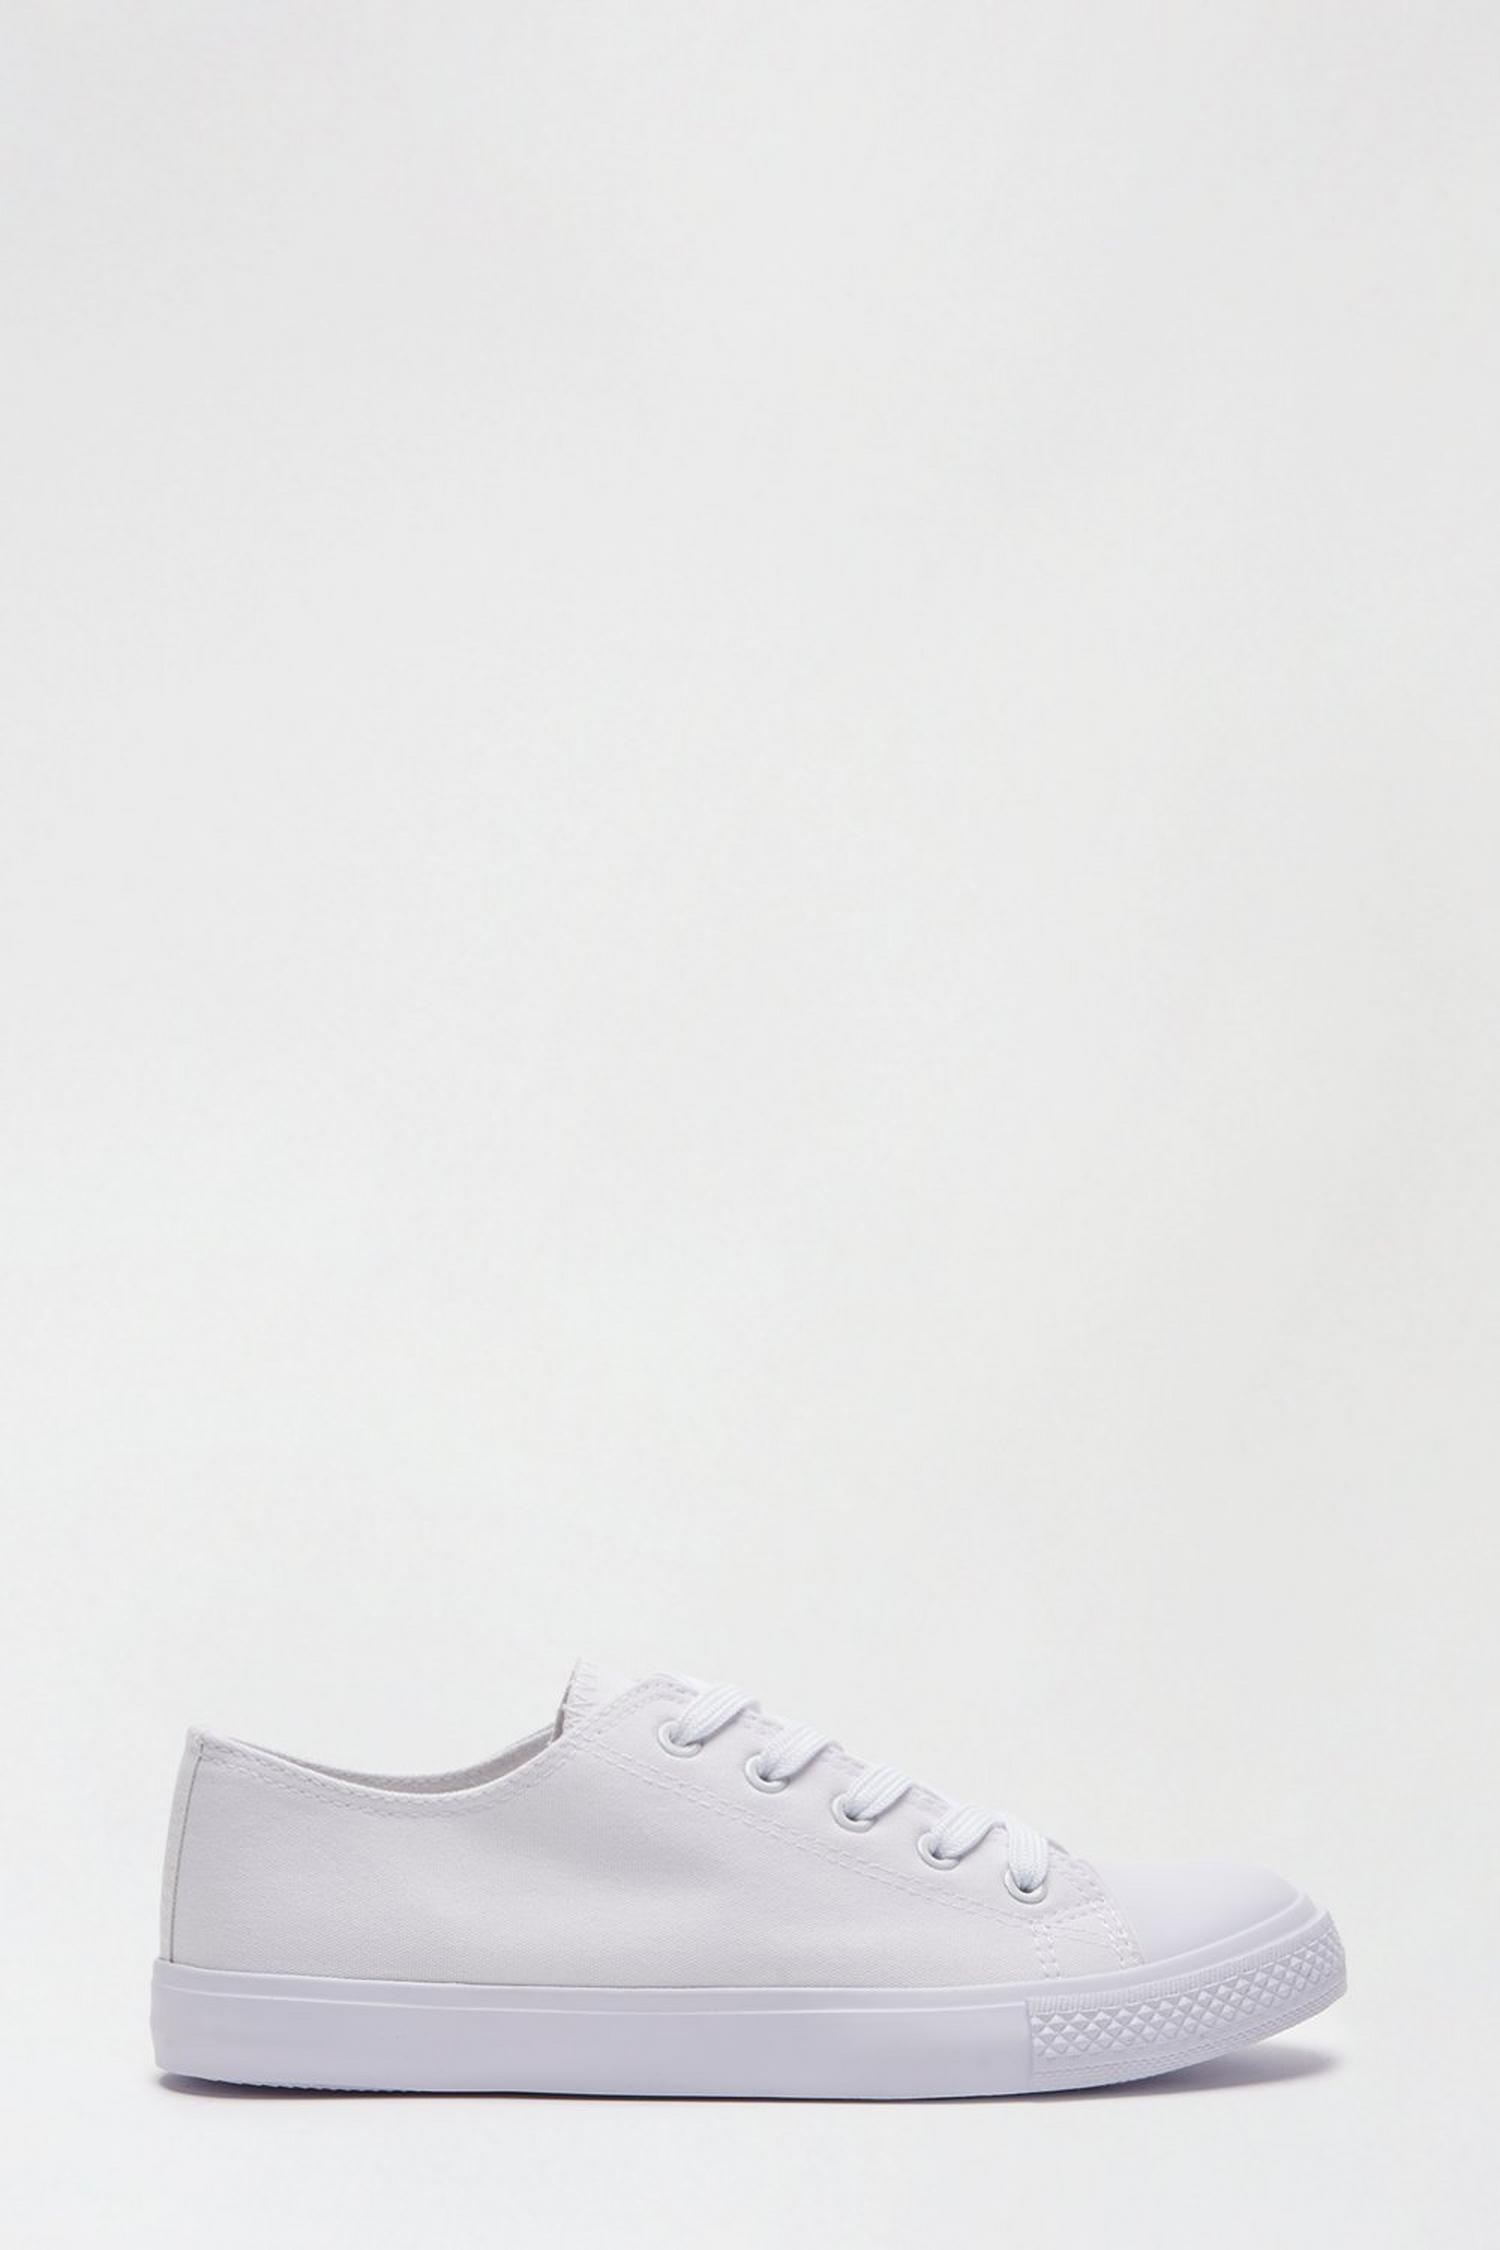 173 White Icon Canvas Trainers image number 1